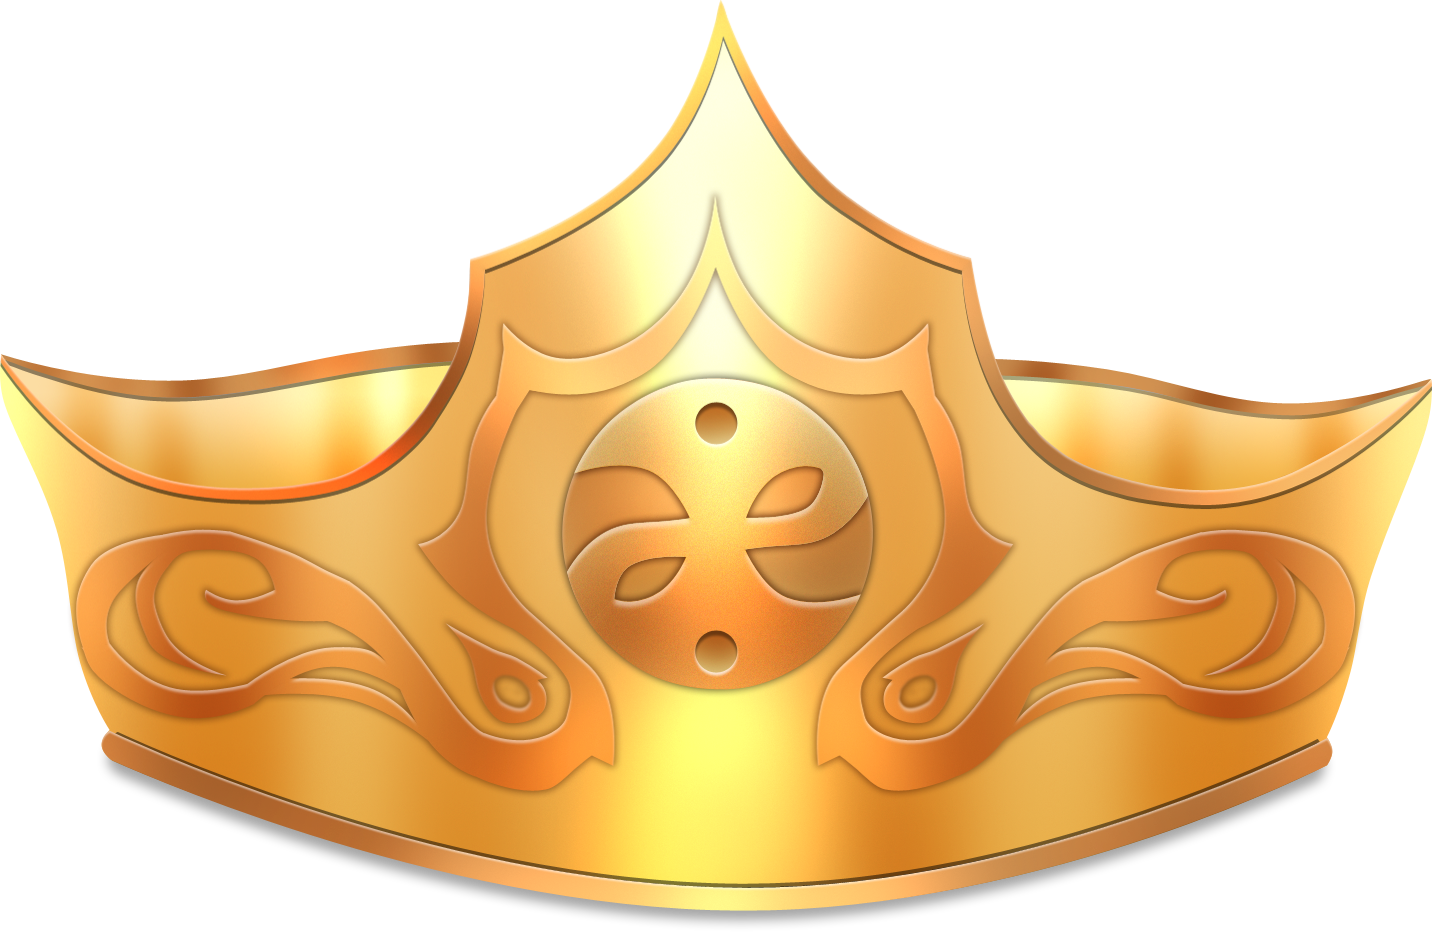 Gold king crown png. Images free download